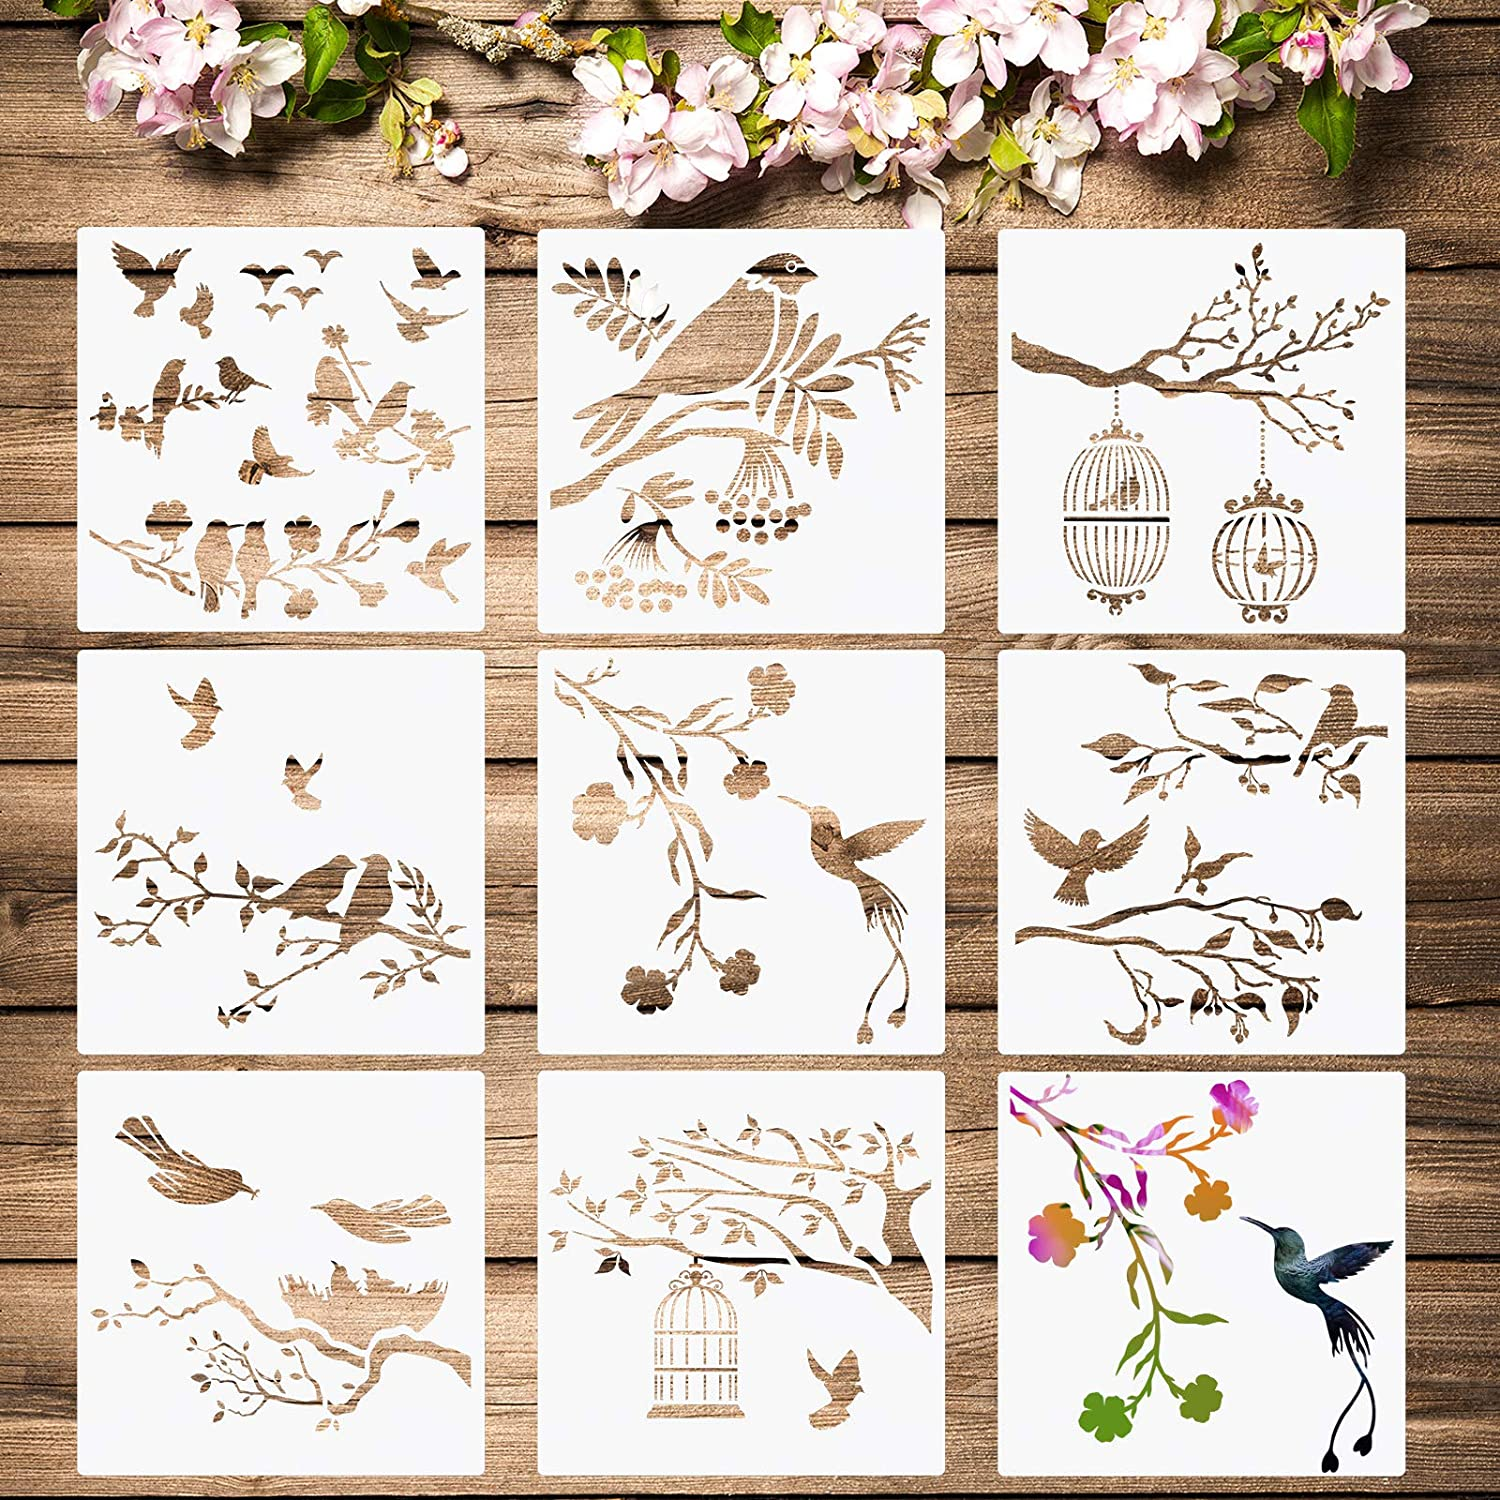 8 Pieces Birds Stencils Birds Tree Branches Stencil Flying Bird Painting Templates Stencils Bird Flower Leaf Drawing Reusable Stencil for Paint Craft Wall DIY Nature Home Decor Wood Signs